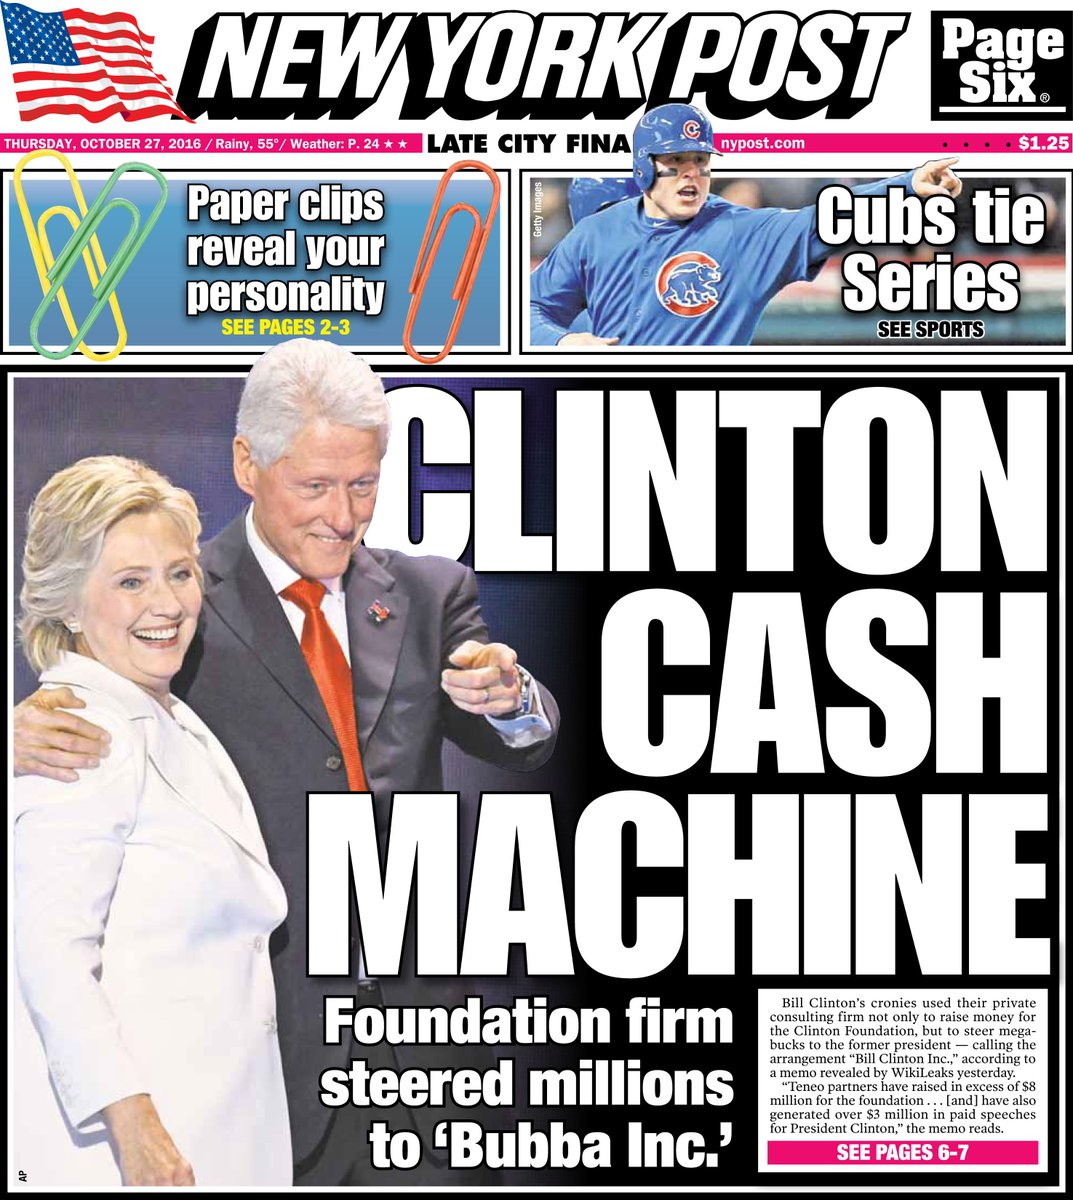 Today's cover: Clinton cronies steered millions to foundation — and Bill's wallet